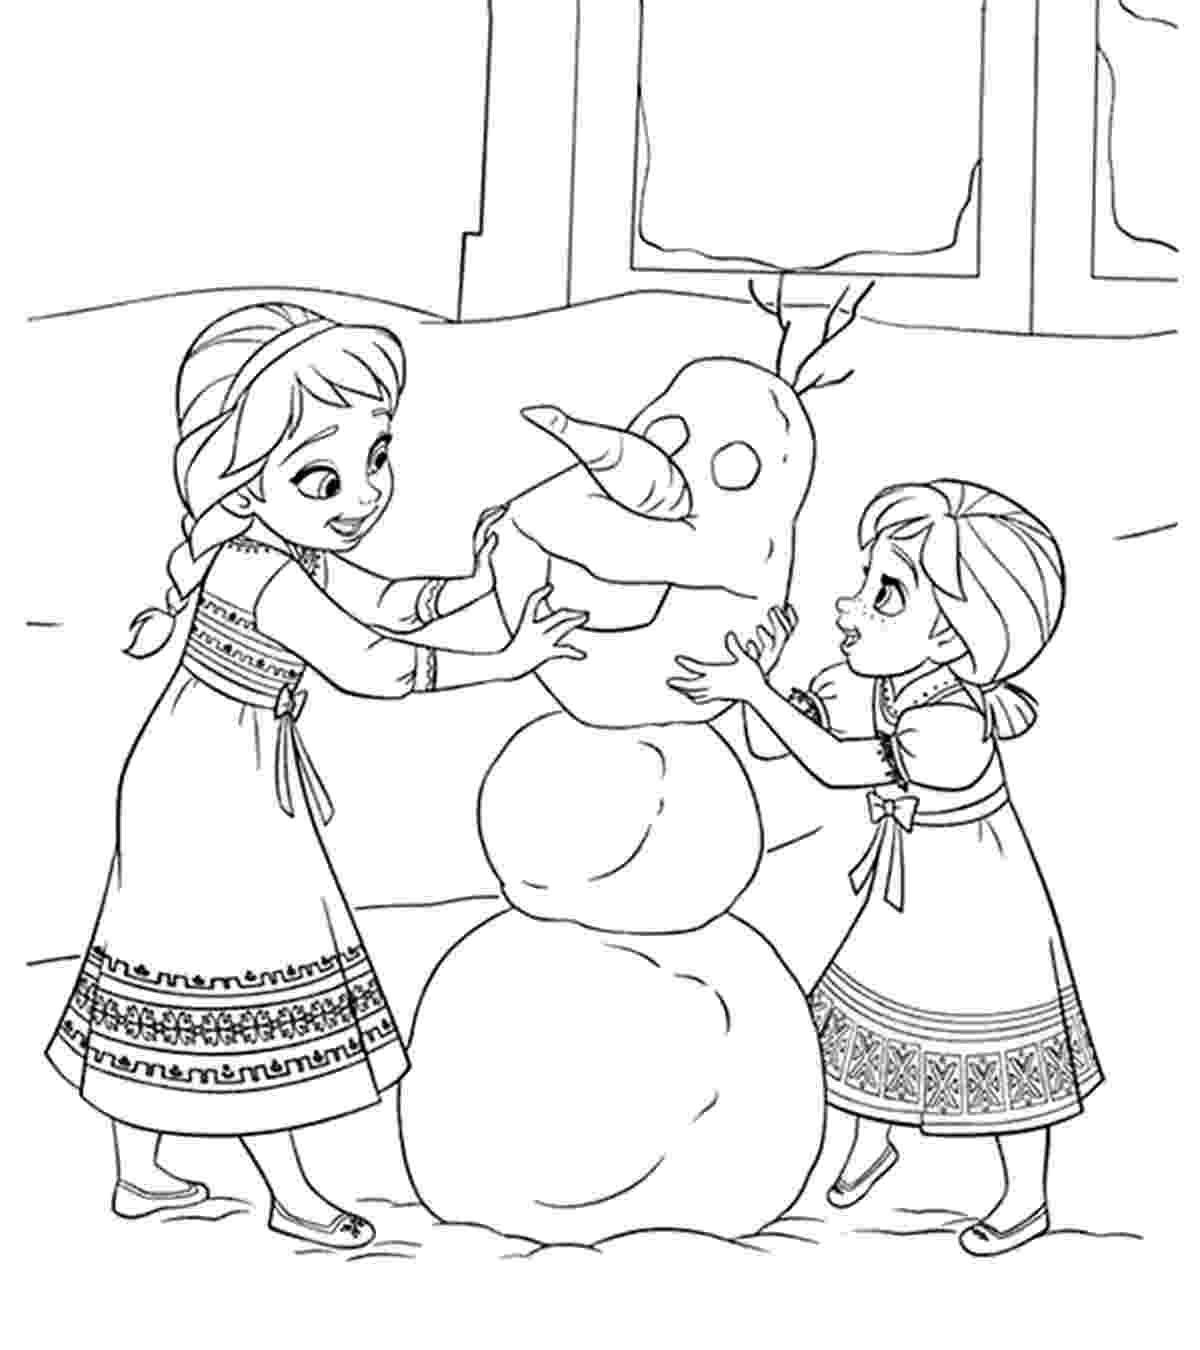 coloring pages for frozen characters disney coloring pages momjunction pages characters for frozen coloring